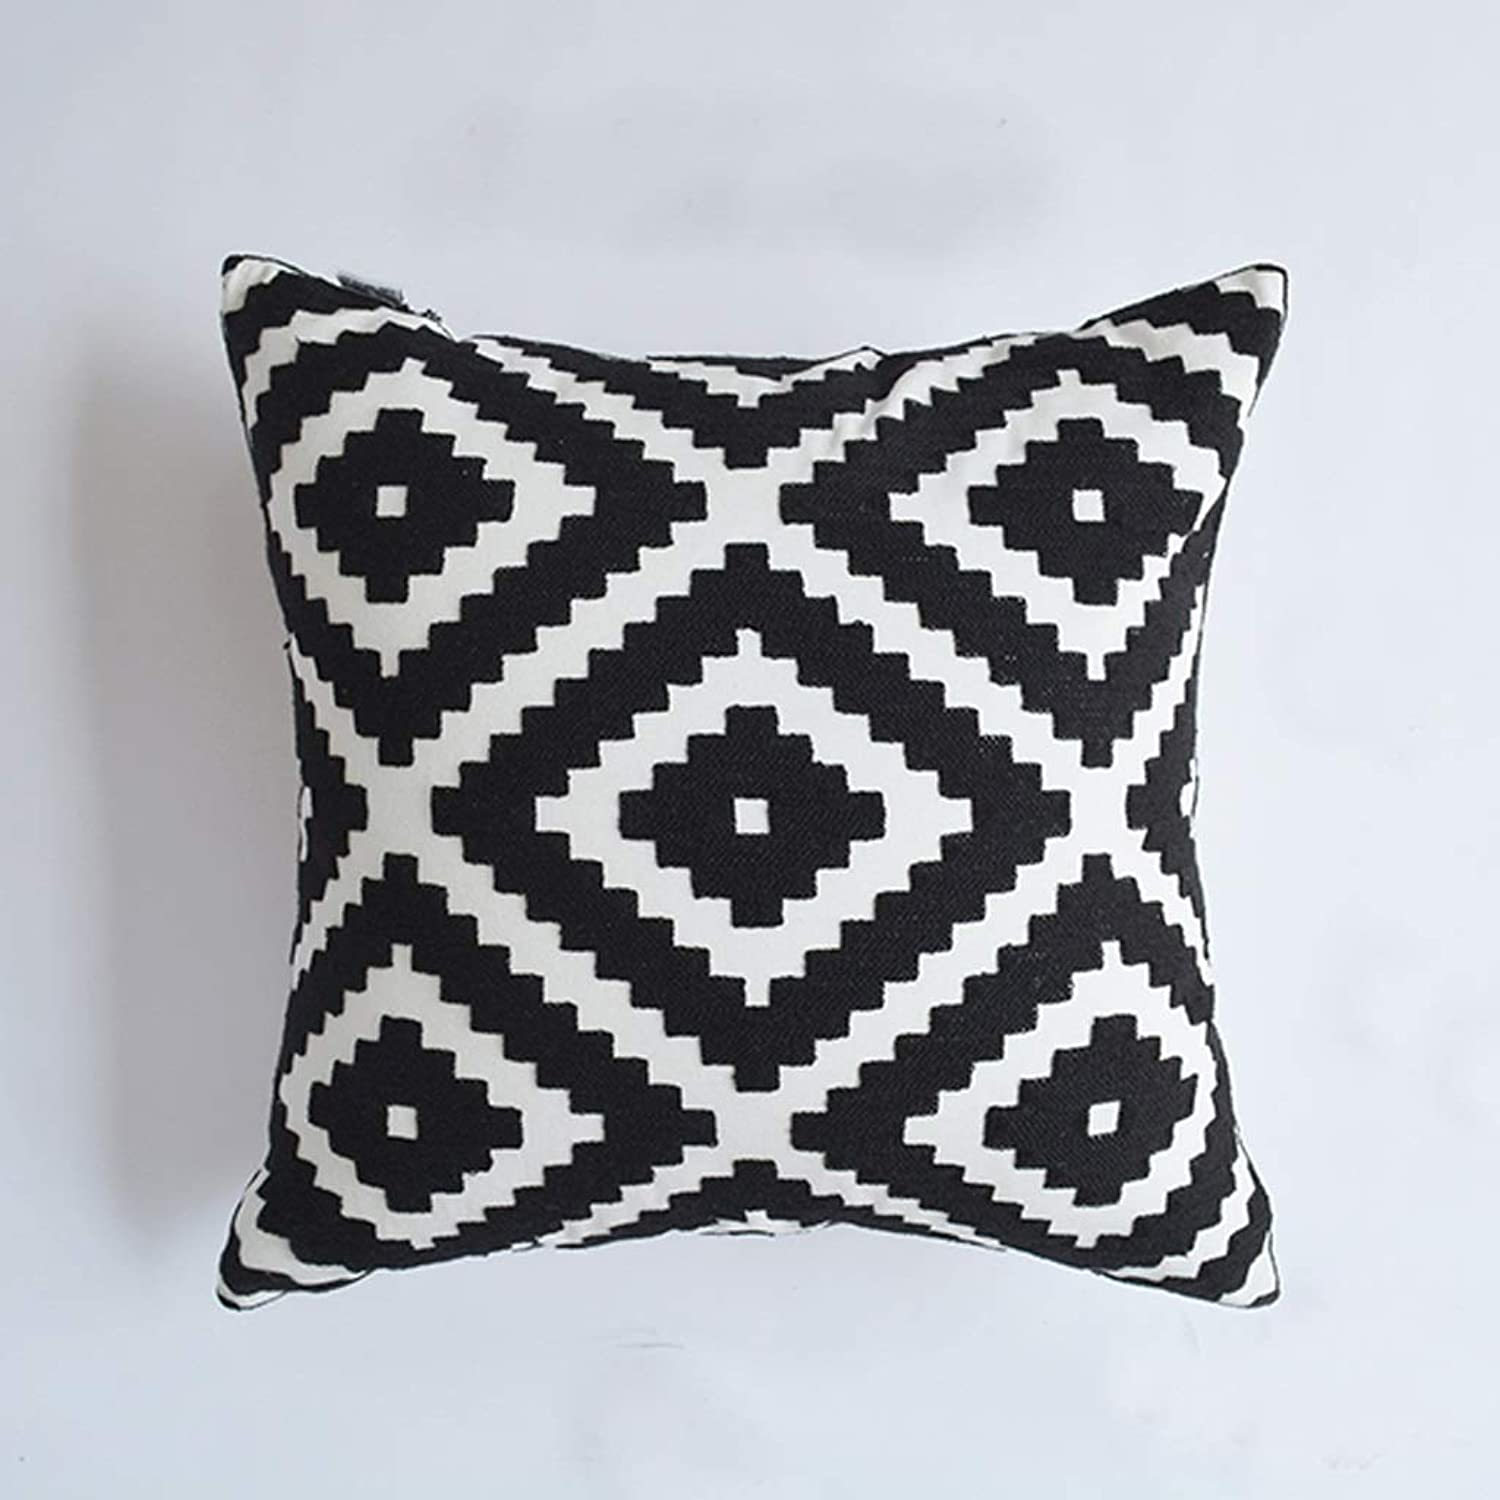 QYSZYG Pillow Sofa Cushion Living Room Home Bedroom Embroidery Model Room Geometry, Multi-color Optional Pillow (color   C)